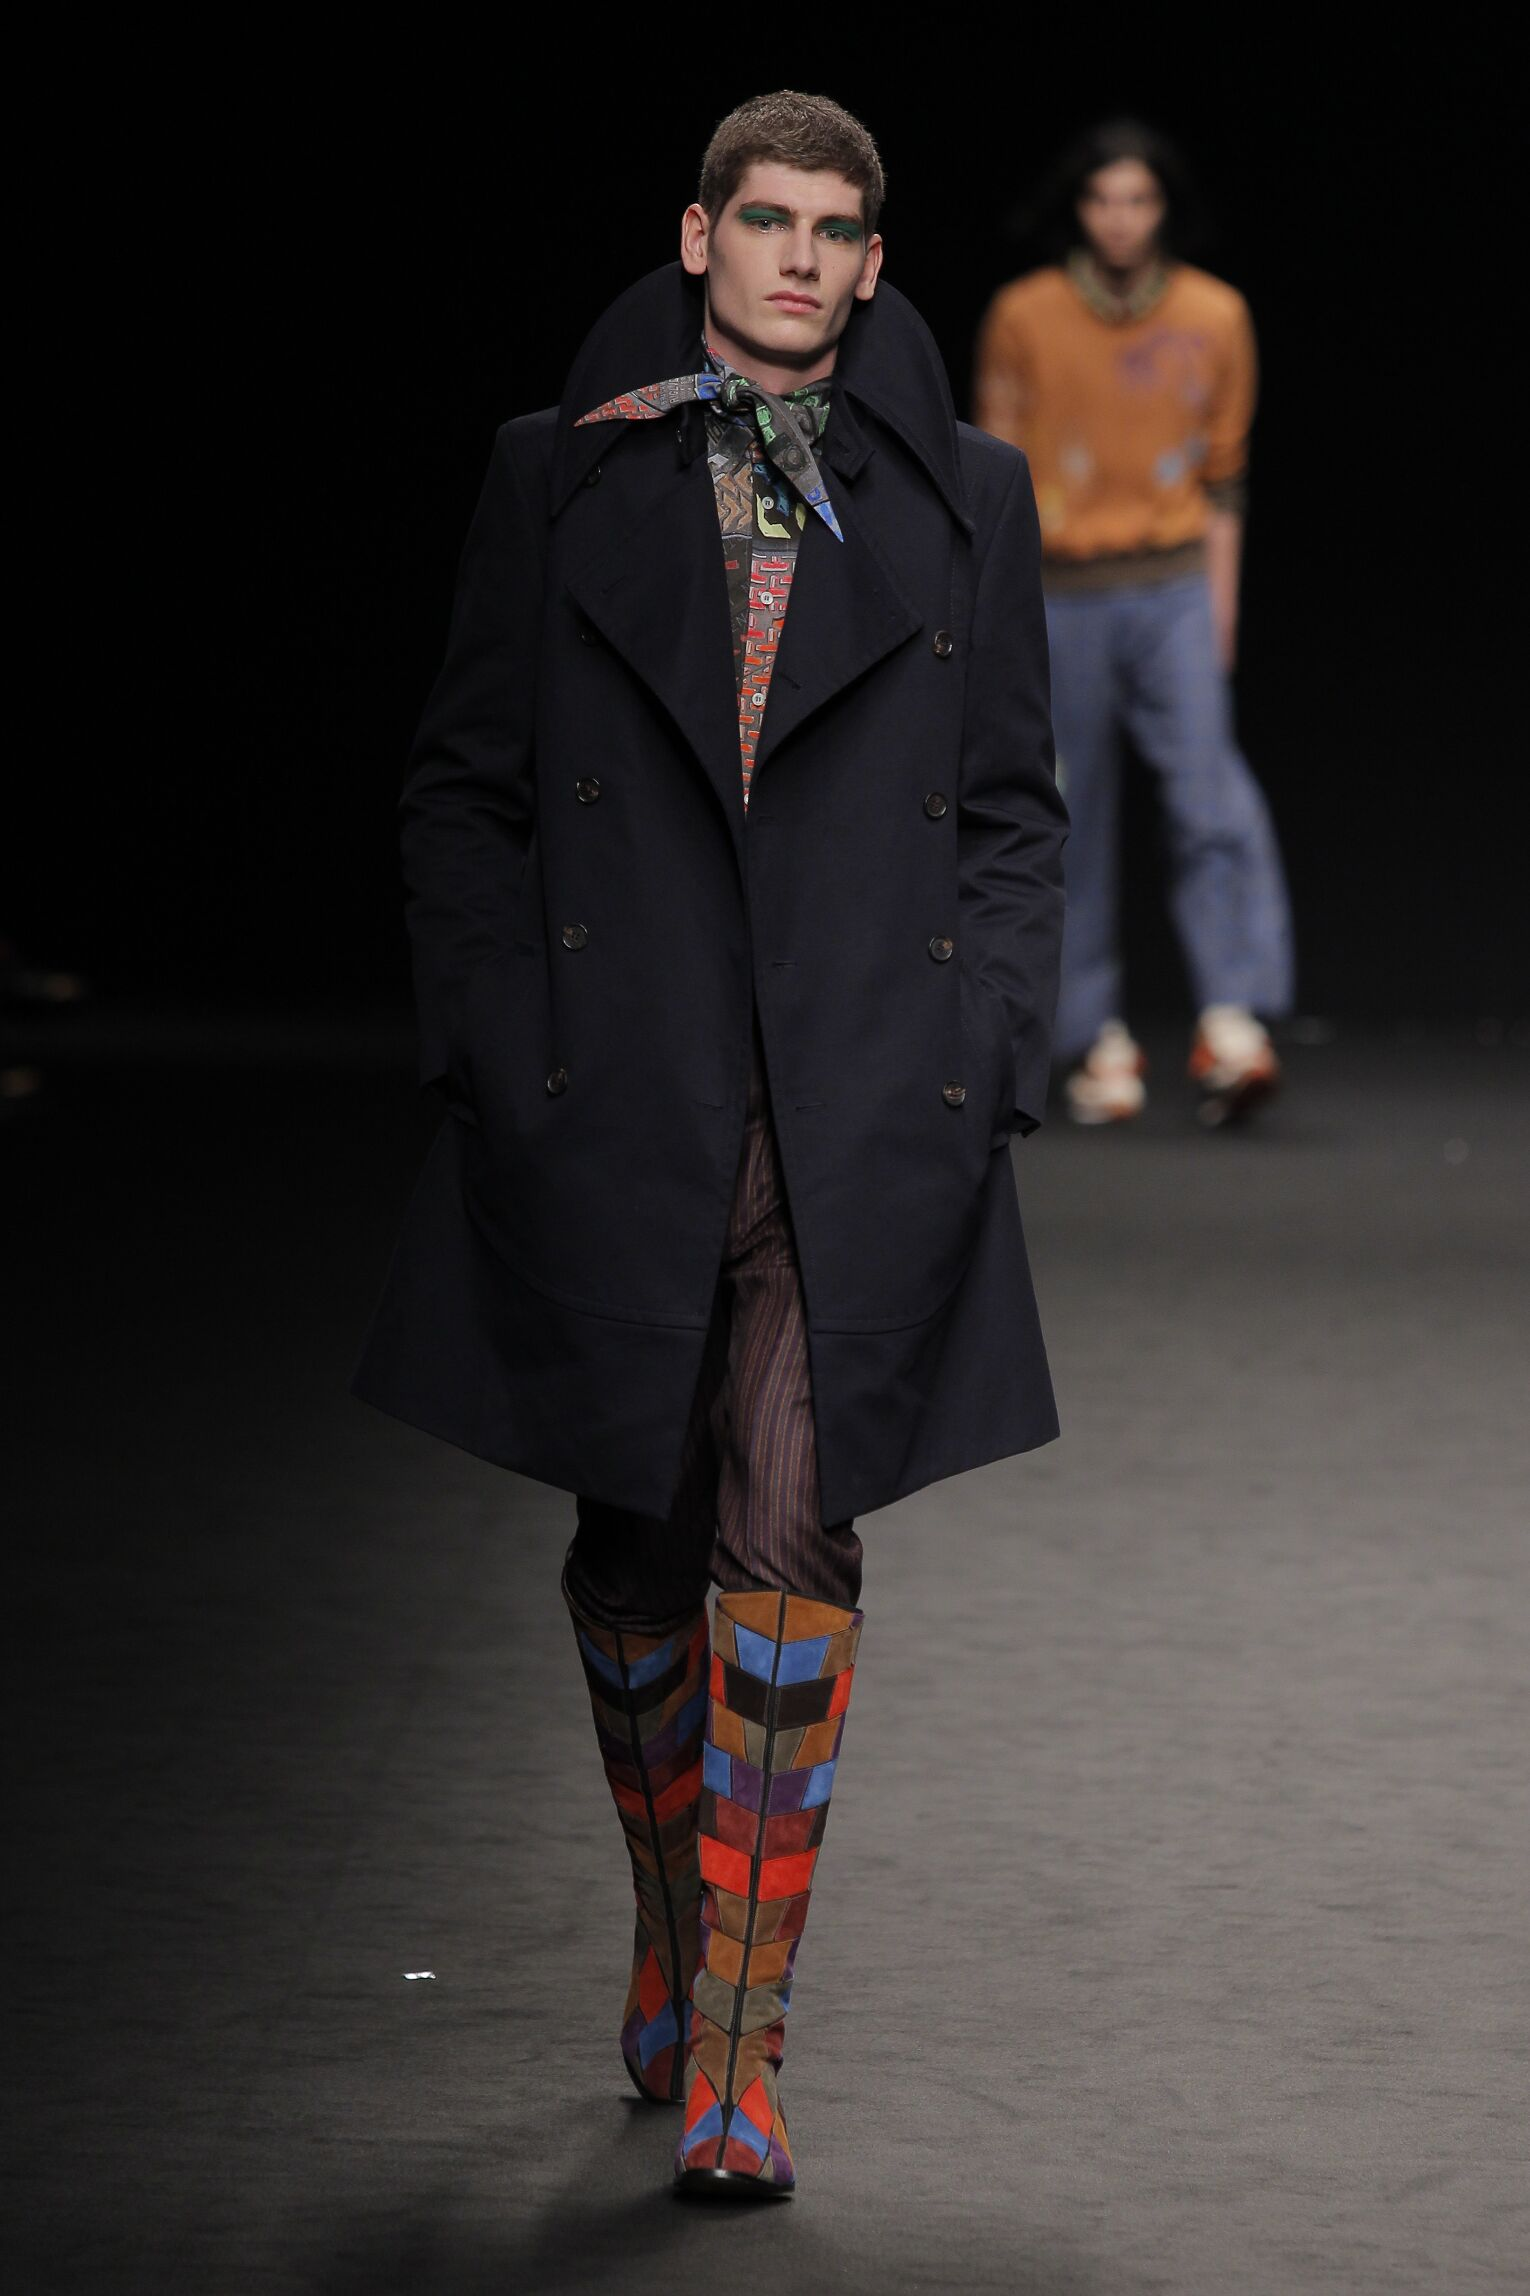 Fashion Man Model Vivienne Westwood Catwalk